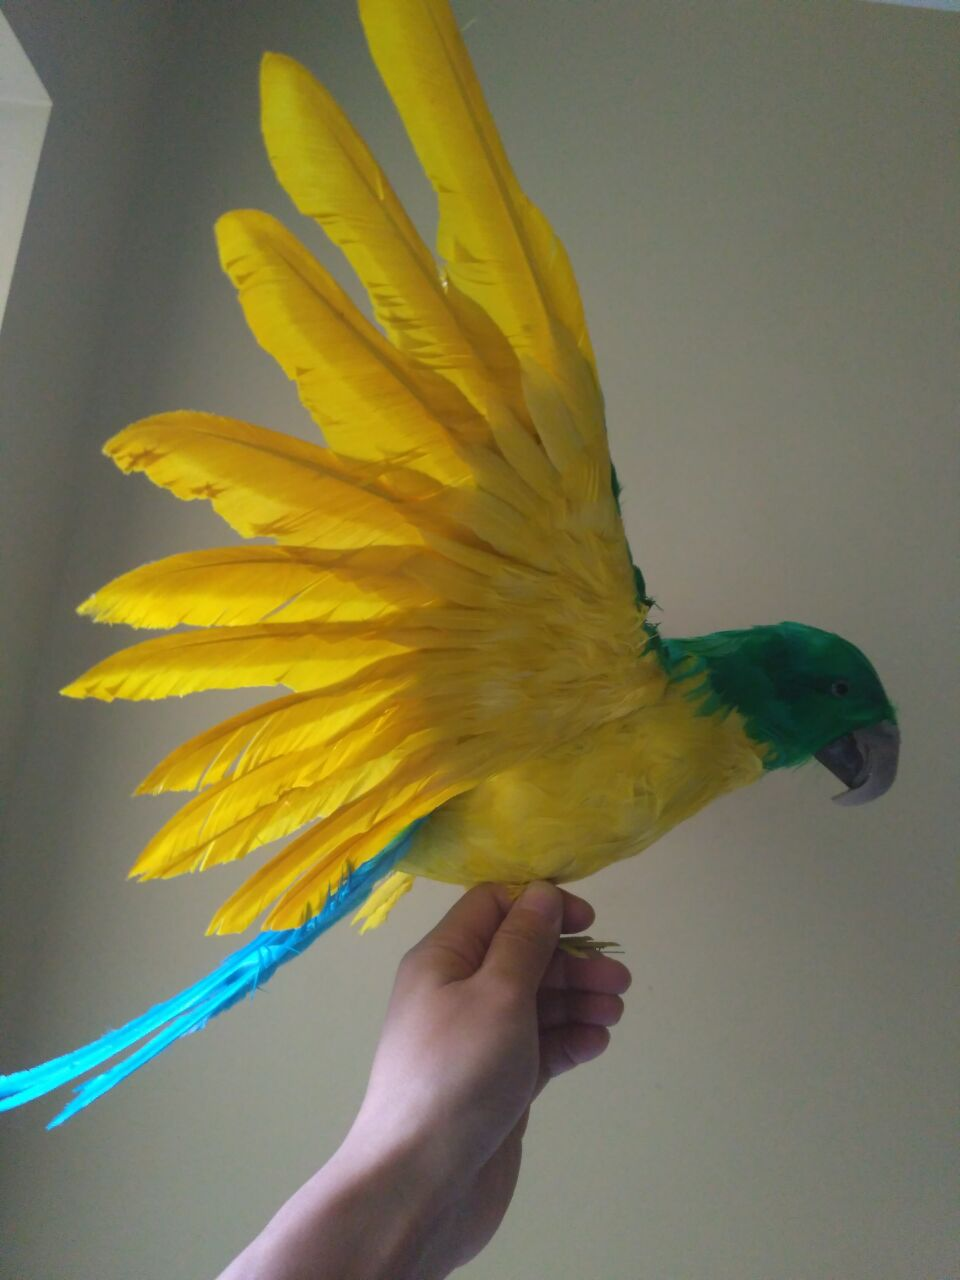 big simulation yellow&green&blue parrot toy foam&furs wings bird model gift about 60x40cm 1615 жидкость cloud parrot 2 0 yellow 120мл 0мг